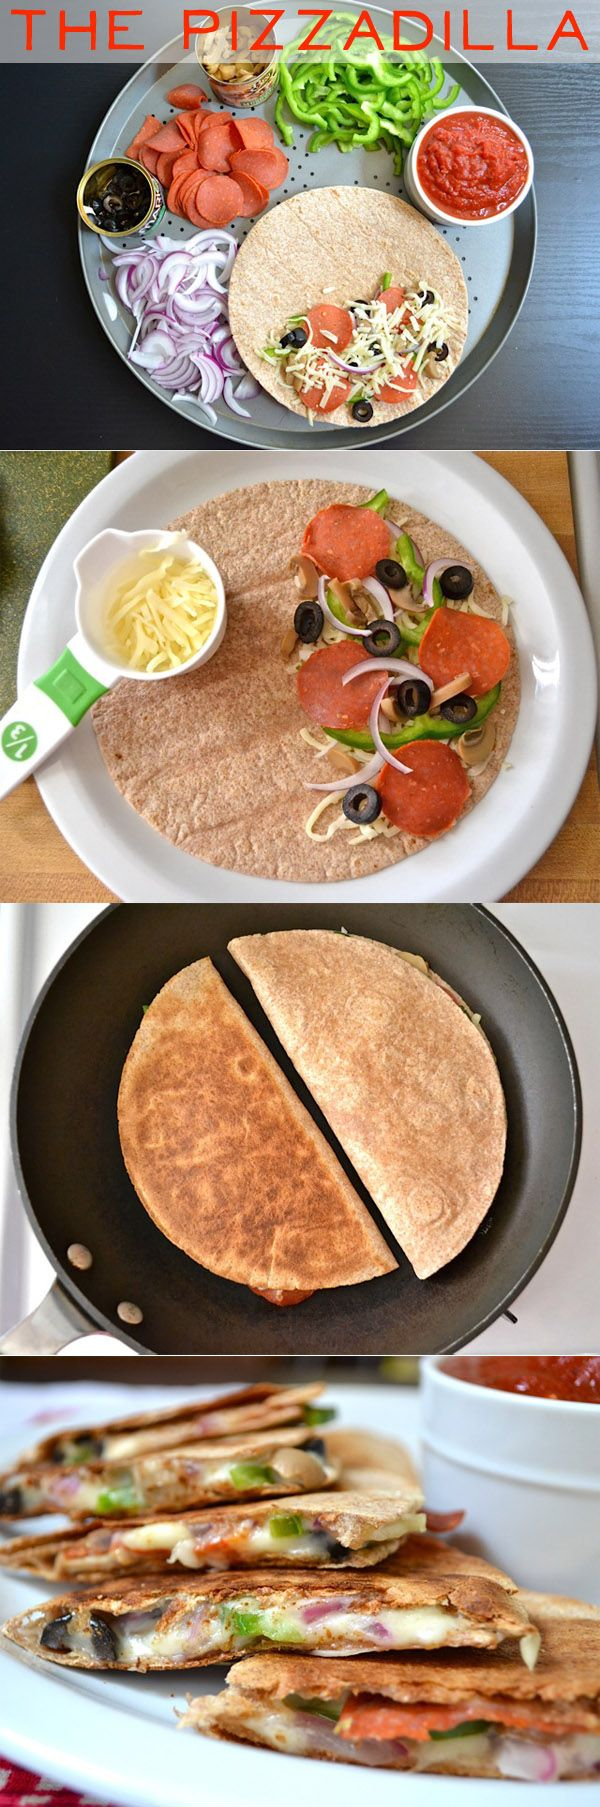 The pizzadilla!: Quick Snacks, Low Carb, Pizzadilla, Healthy Pizza, Pizza Ideas, Pizza Recipes, Healthy Gluten Free, Gluten Free Pizza, Pizza Quesadillas